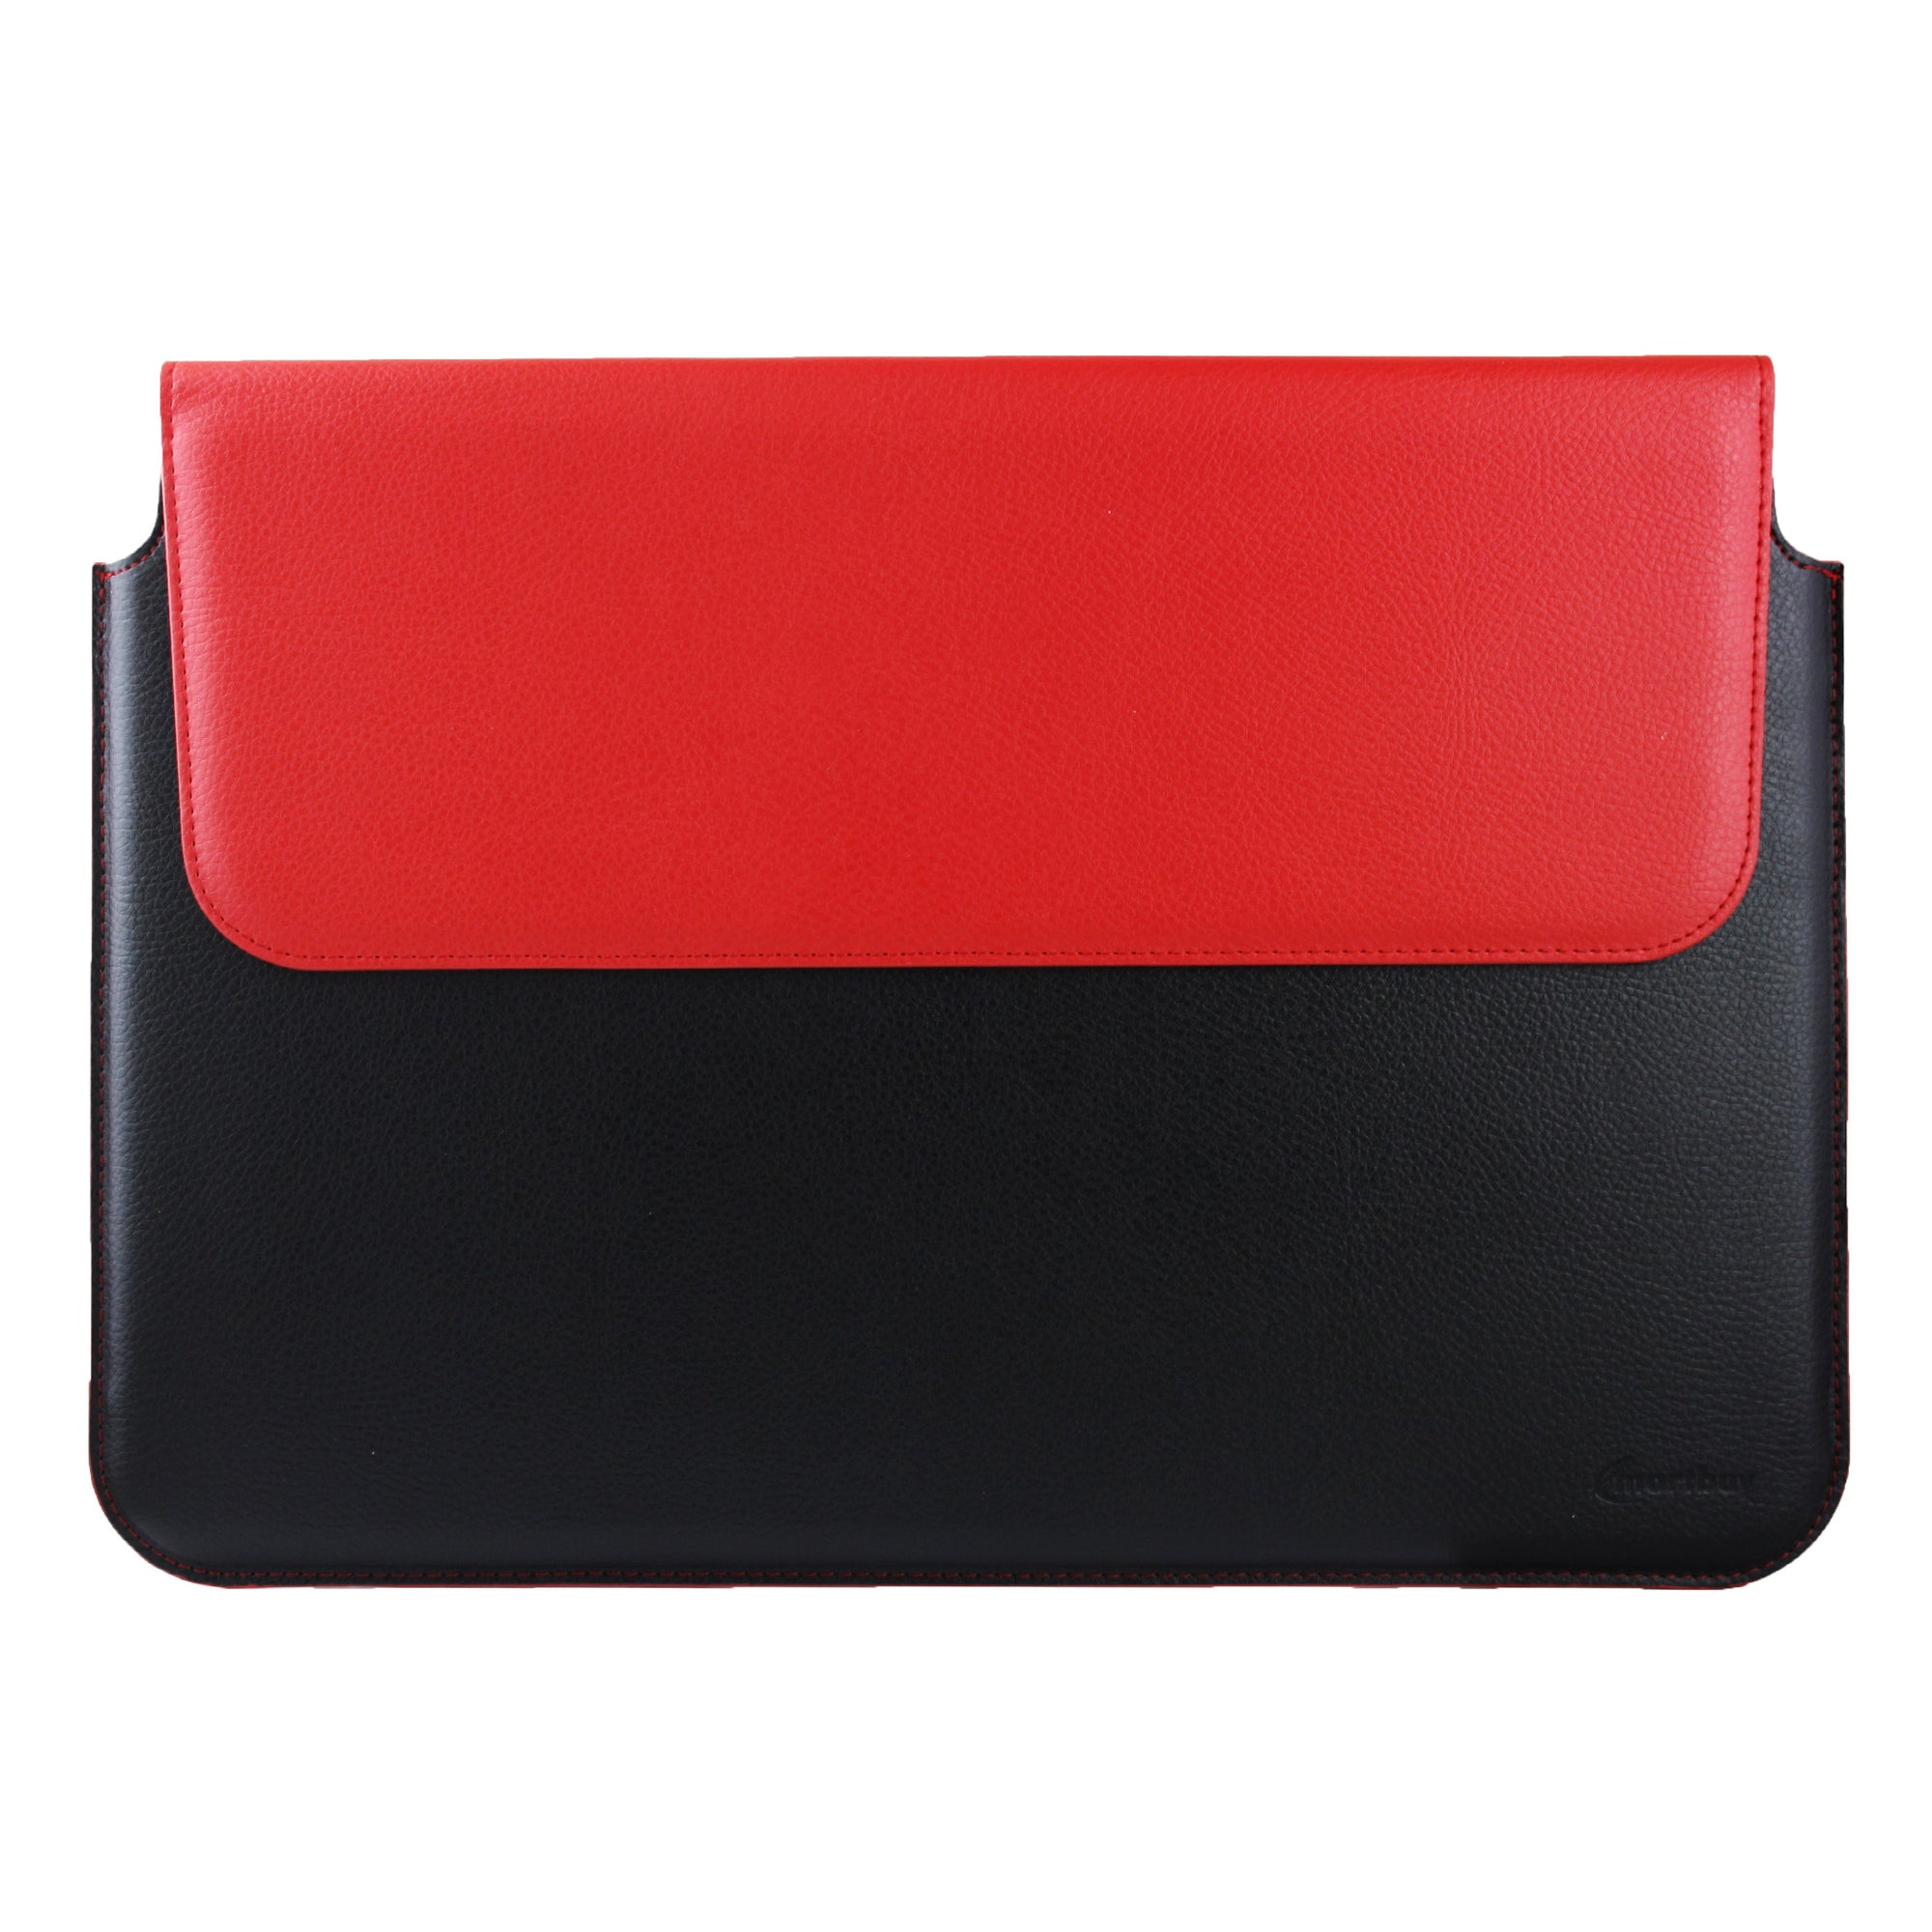 Universal Magnetic Sleeve - Black Red Two Tone